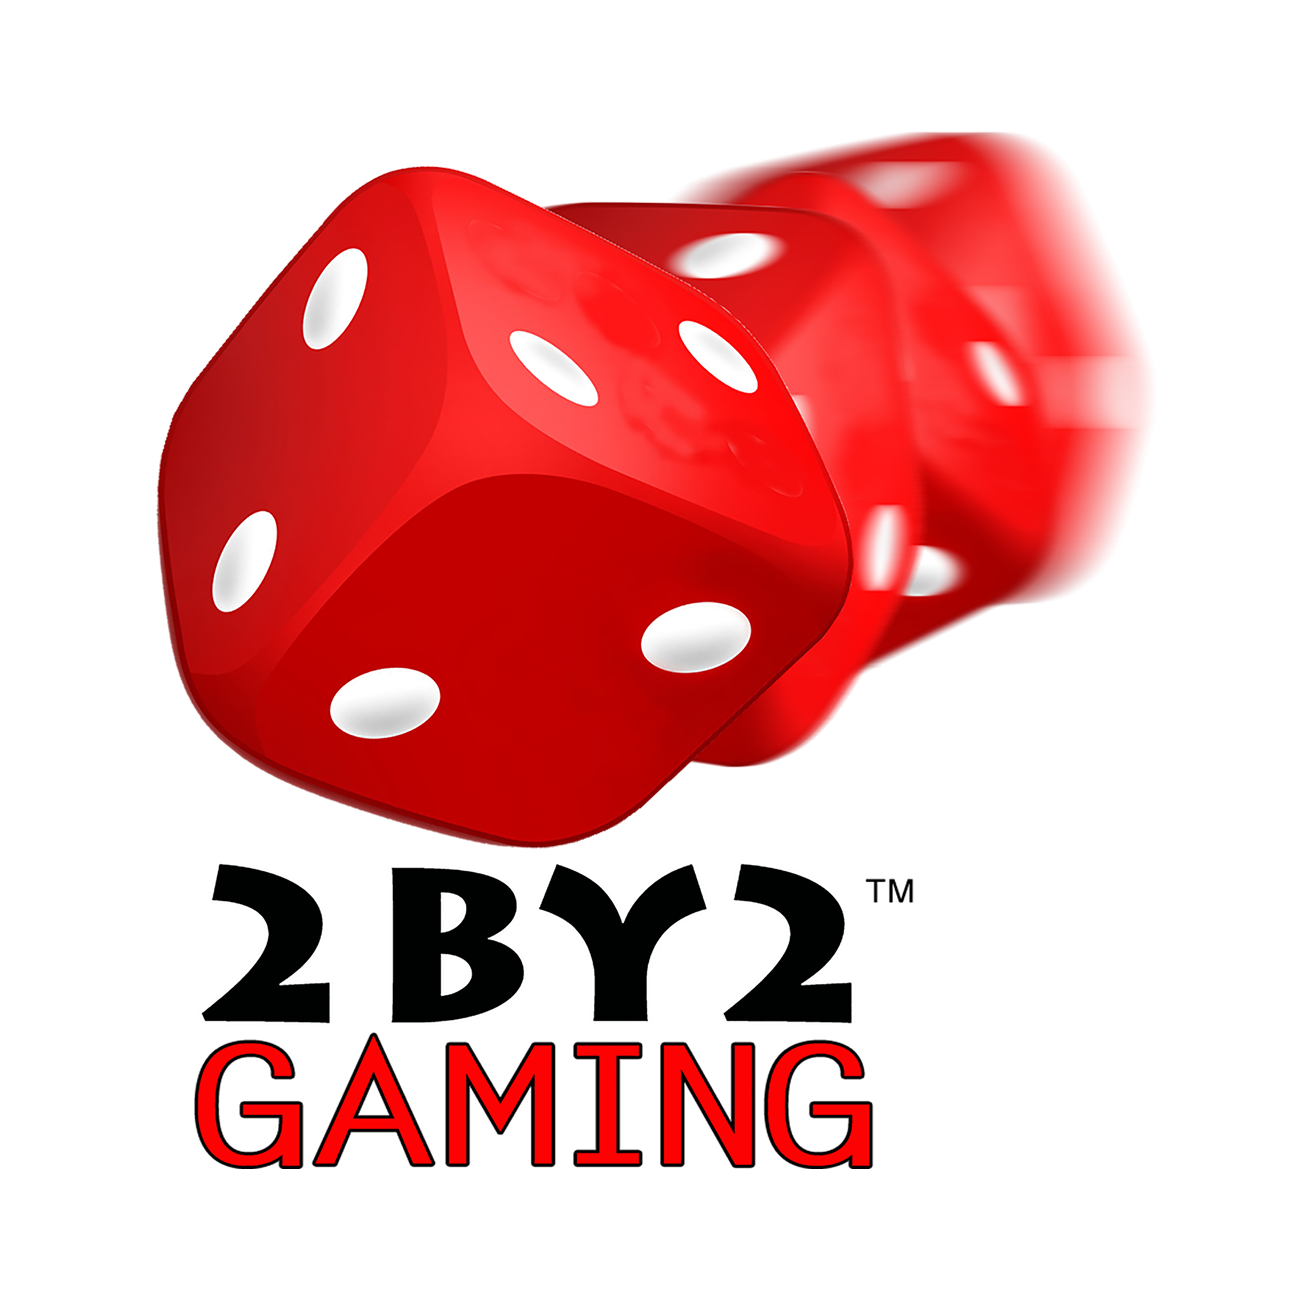 2 BY 2 Gaming jeux